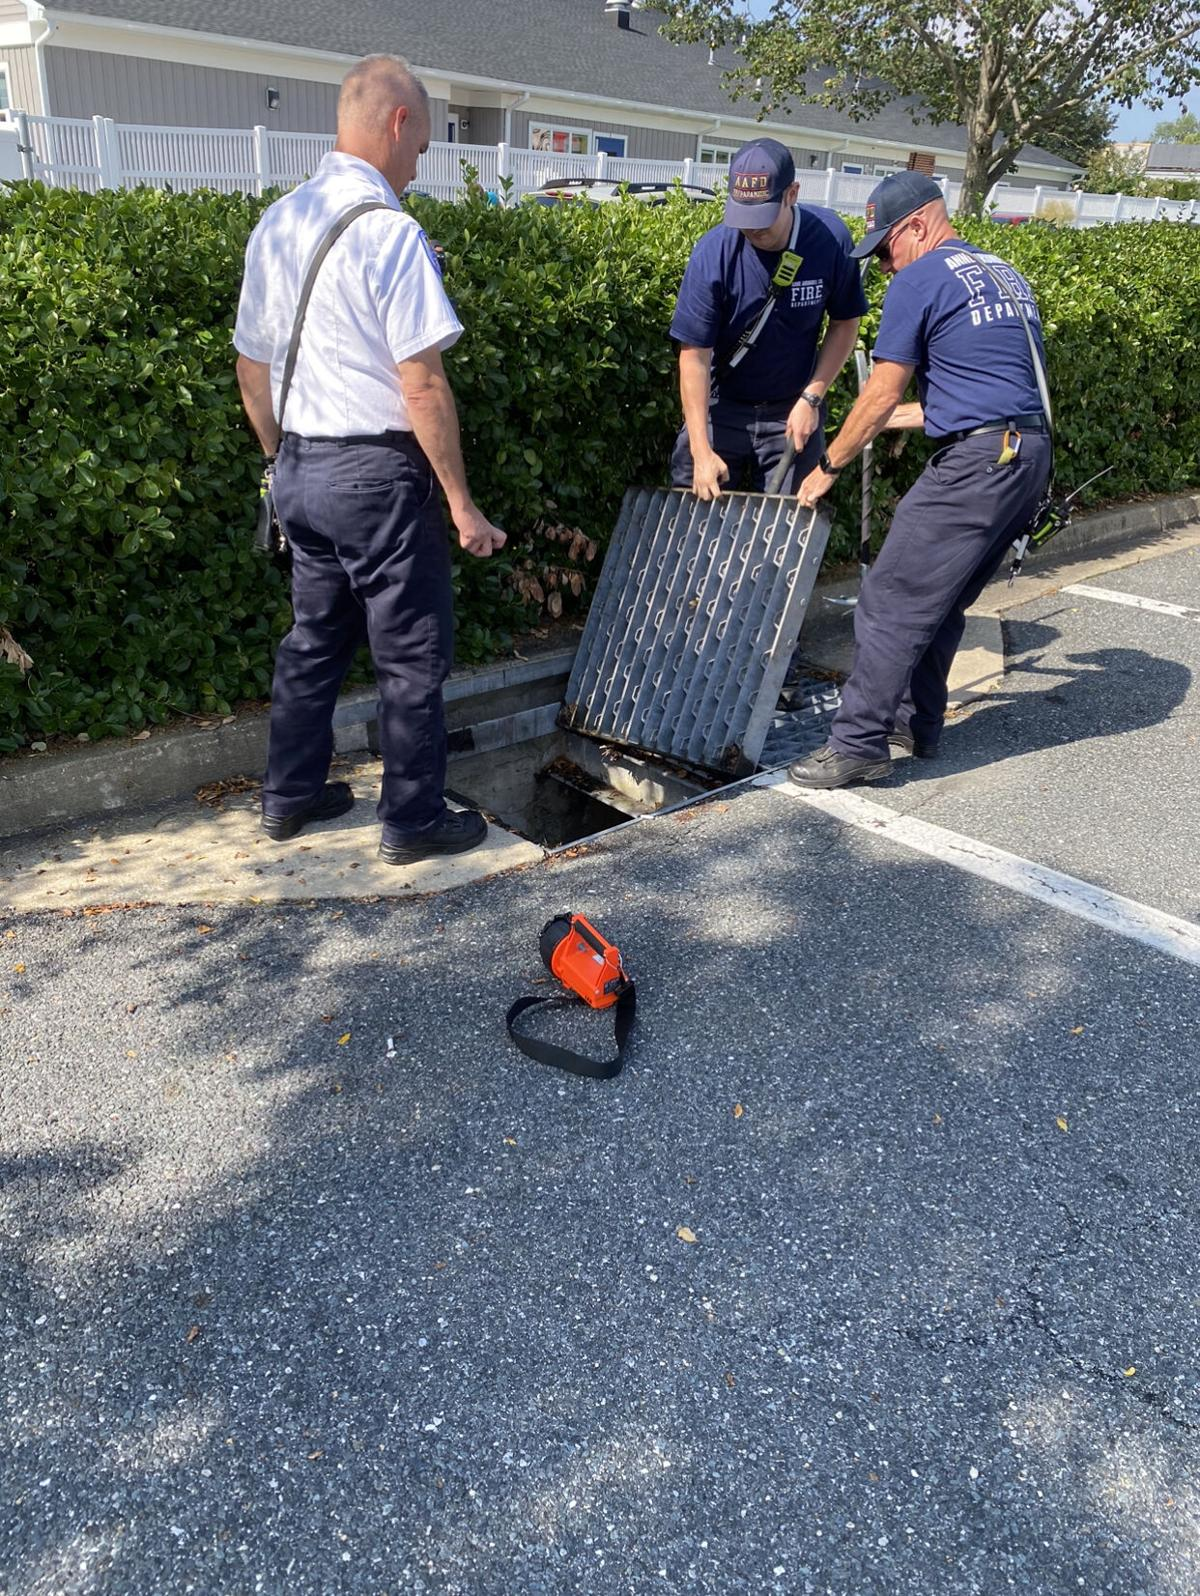 AA County Firefighters Respond For Duckling Rescue